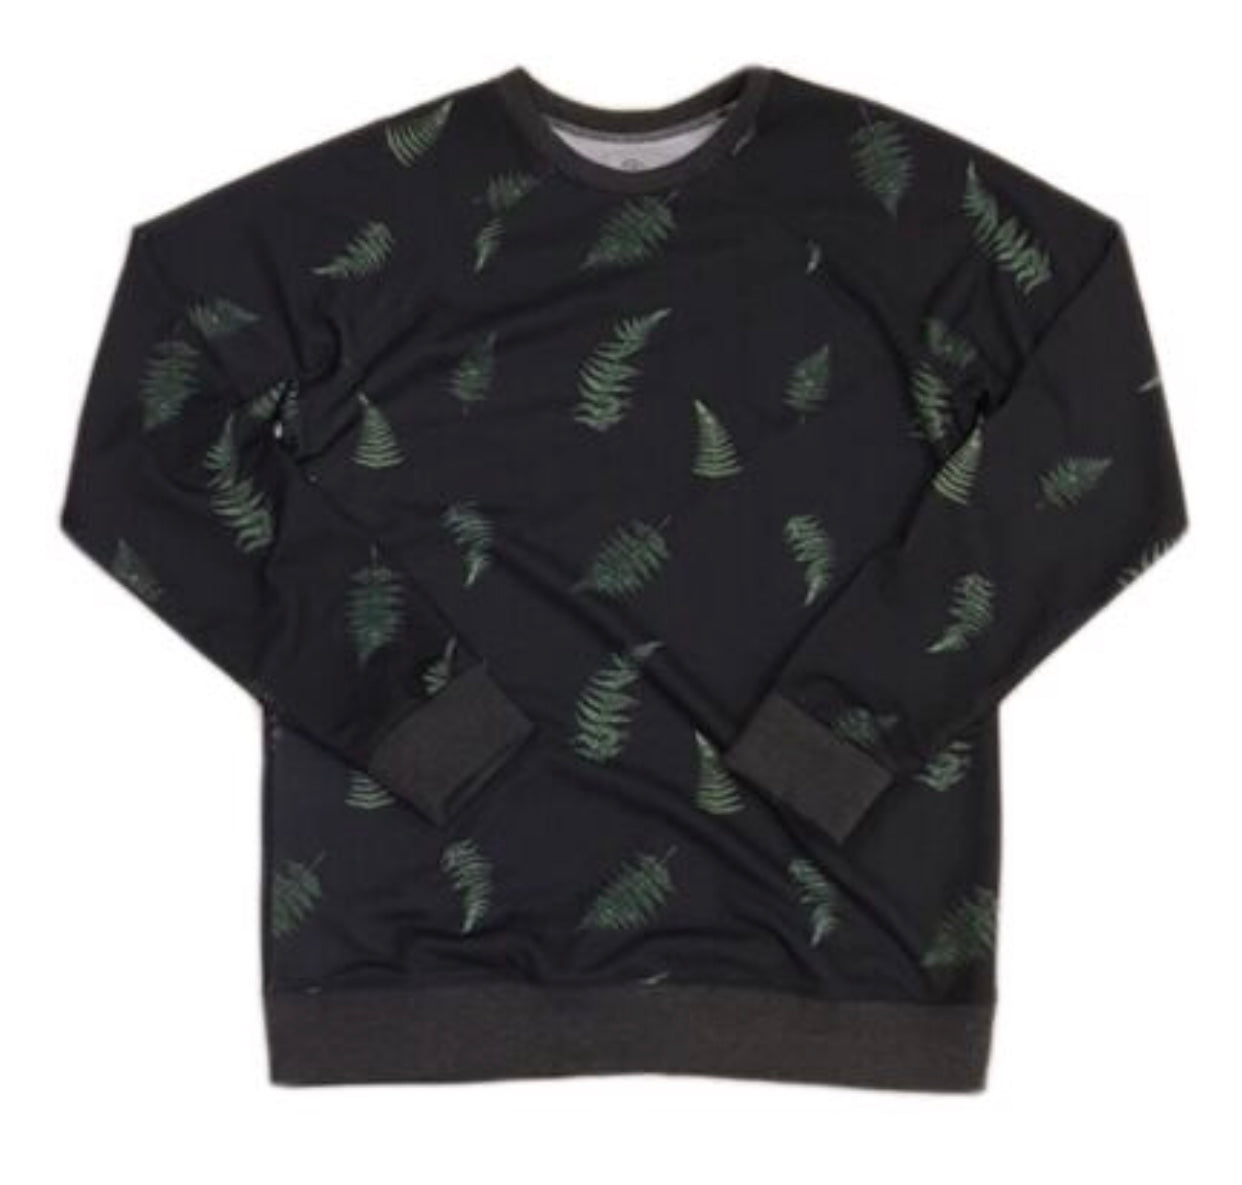 Fern sweatshirt